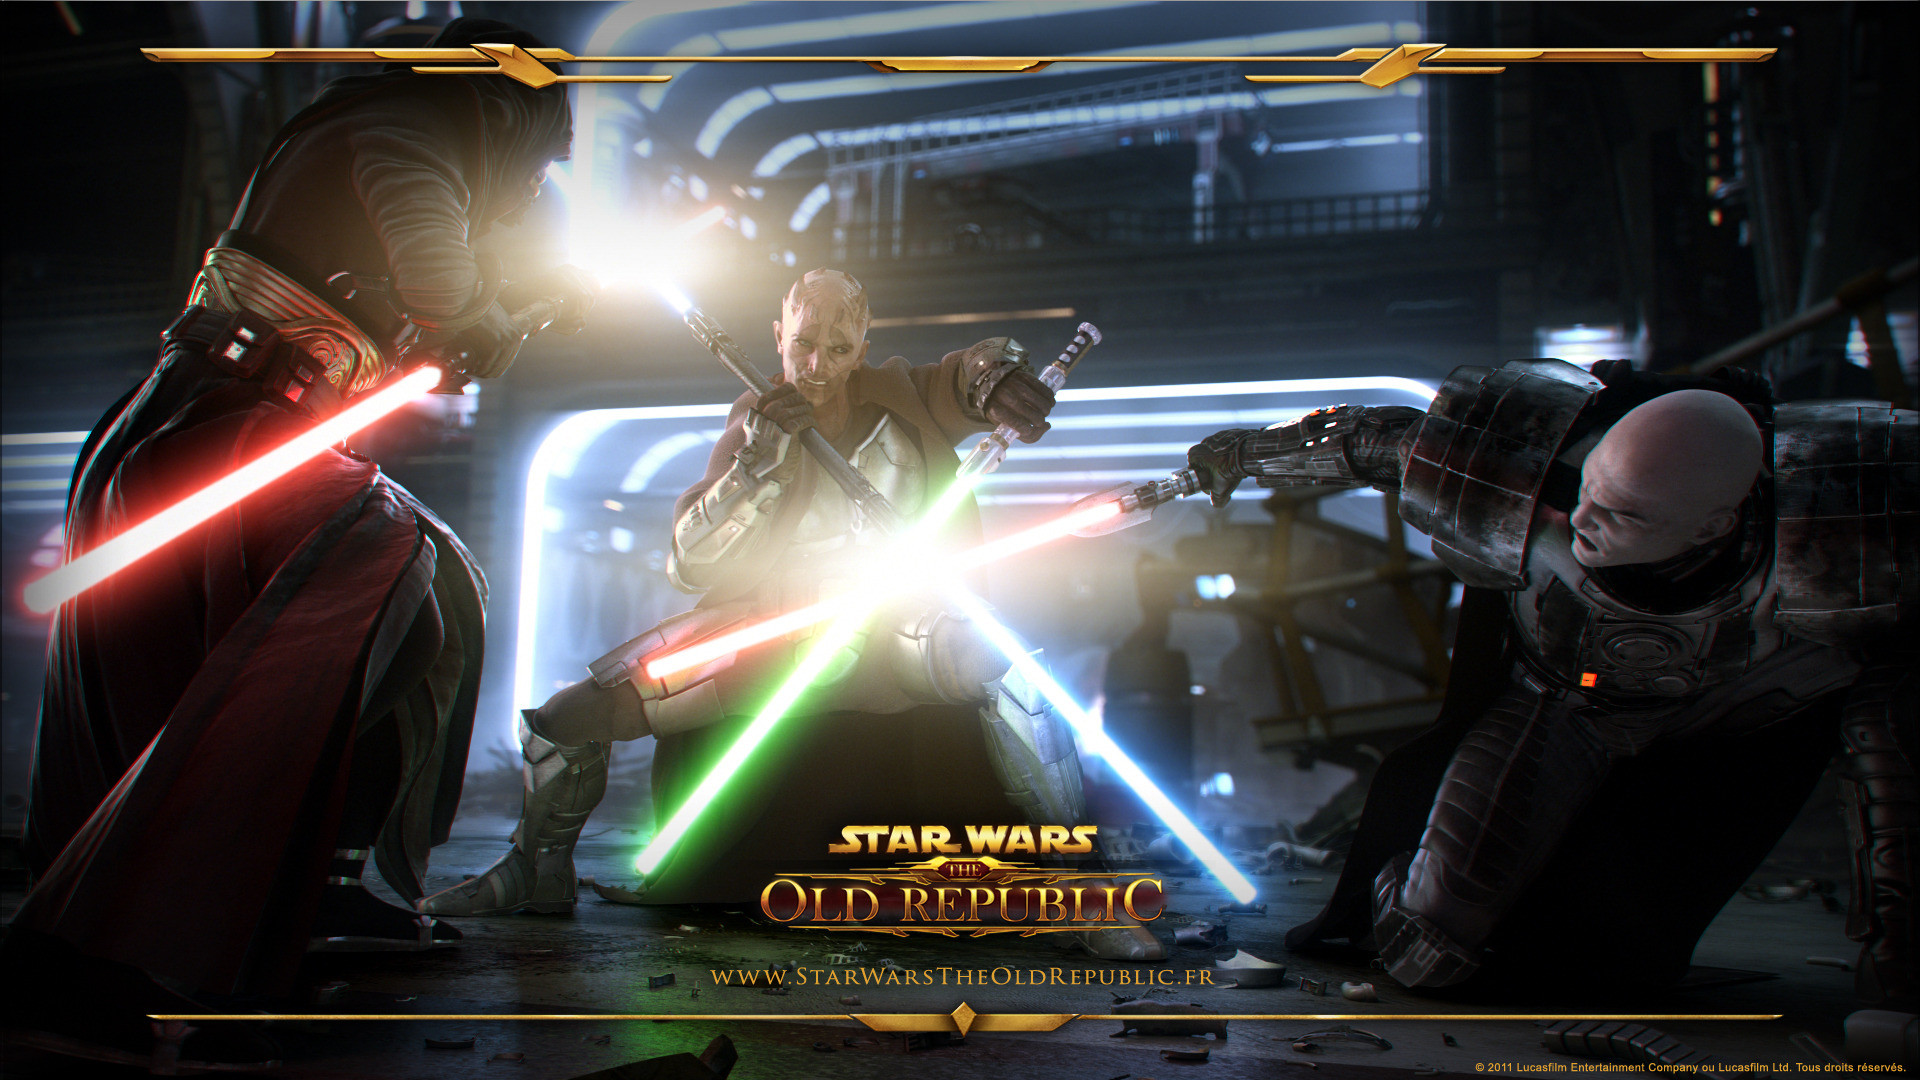 Res: 1920x1080, Star Wars The Old Republic Wallpaper Hd Pics Swtor Of Pc